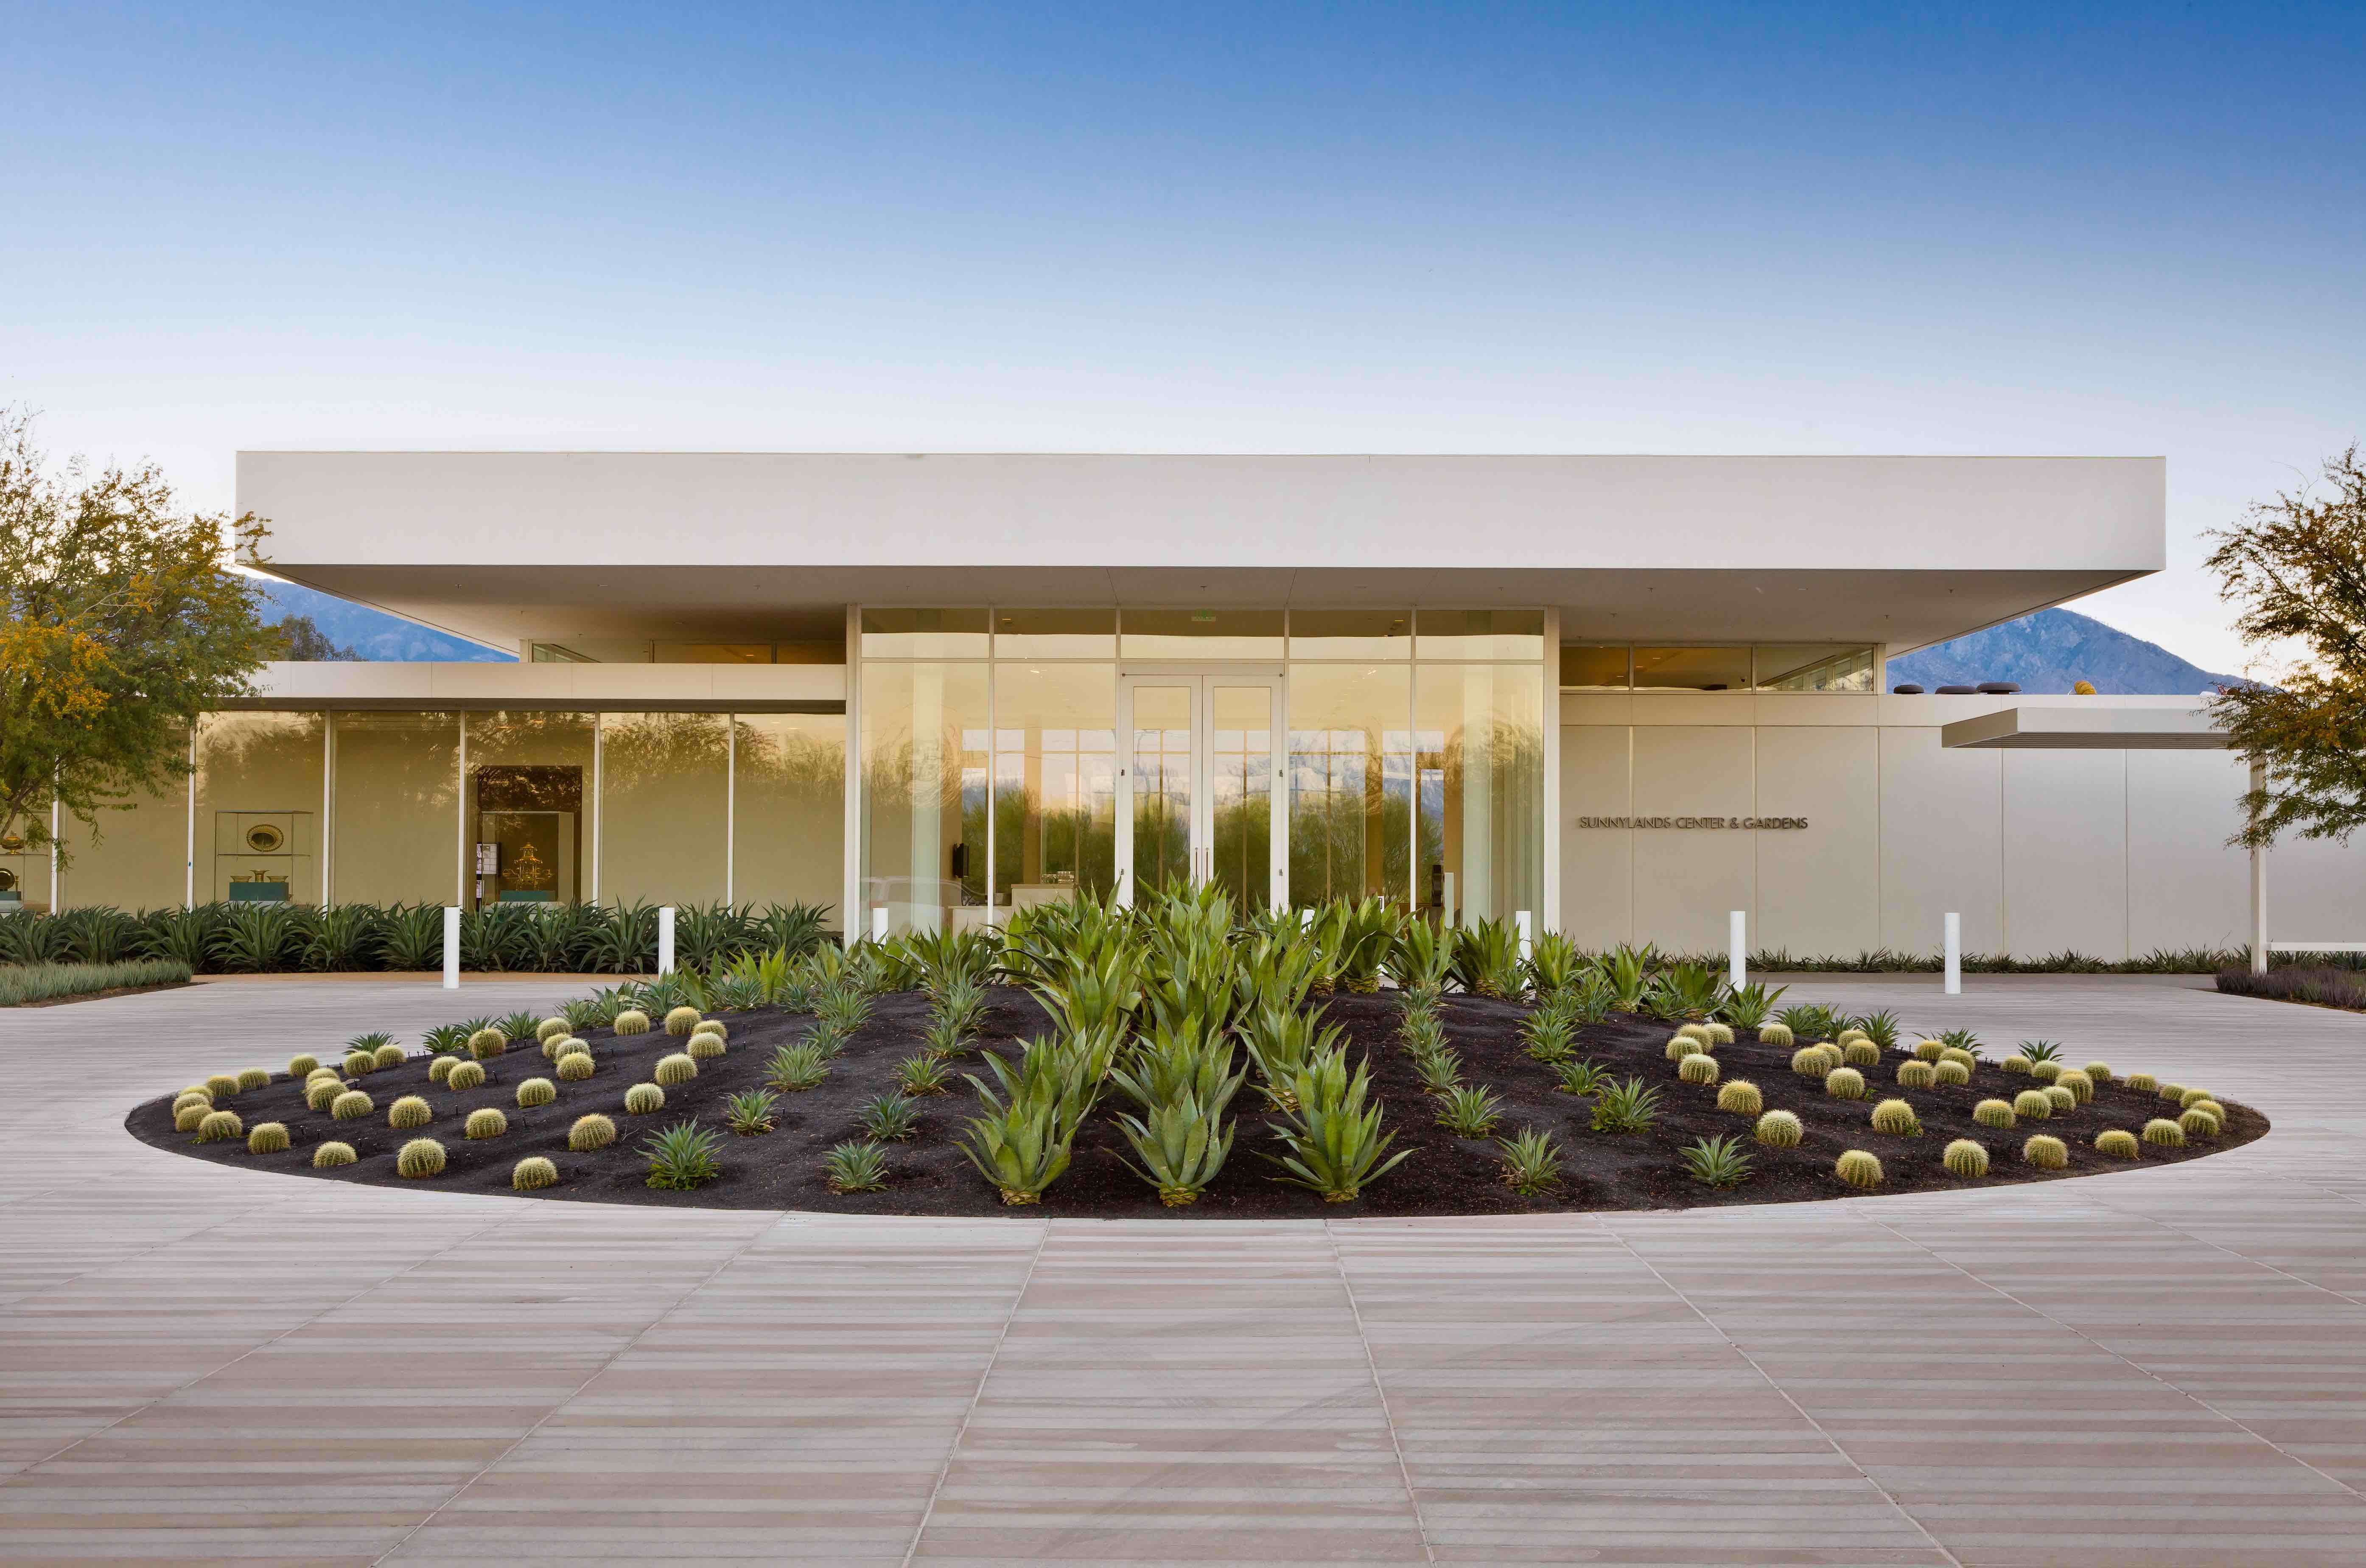 Scenic Sunnylands Centers And Gardens Amy Laughinghouse Hits The Road